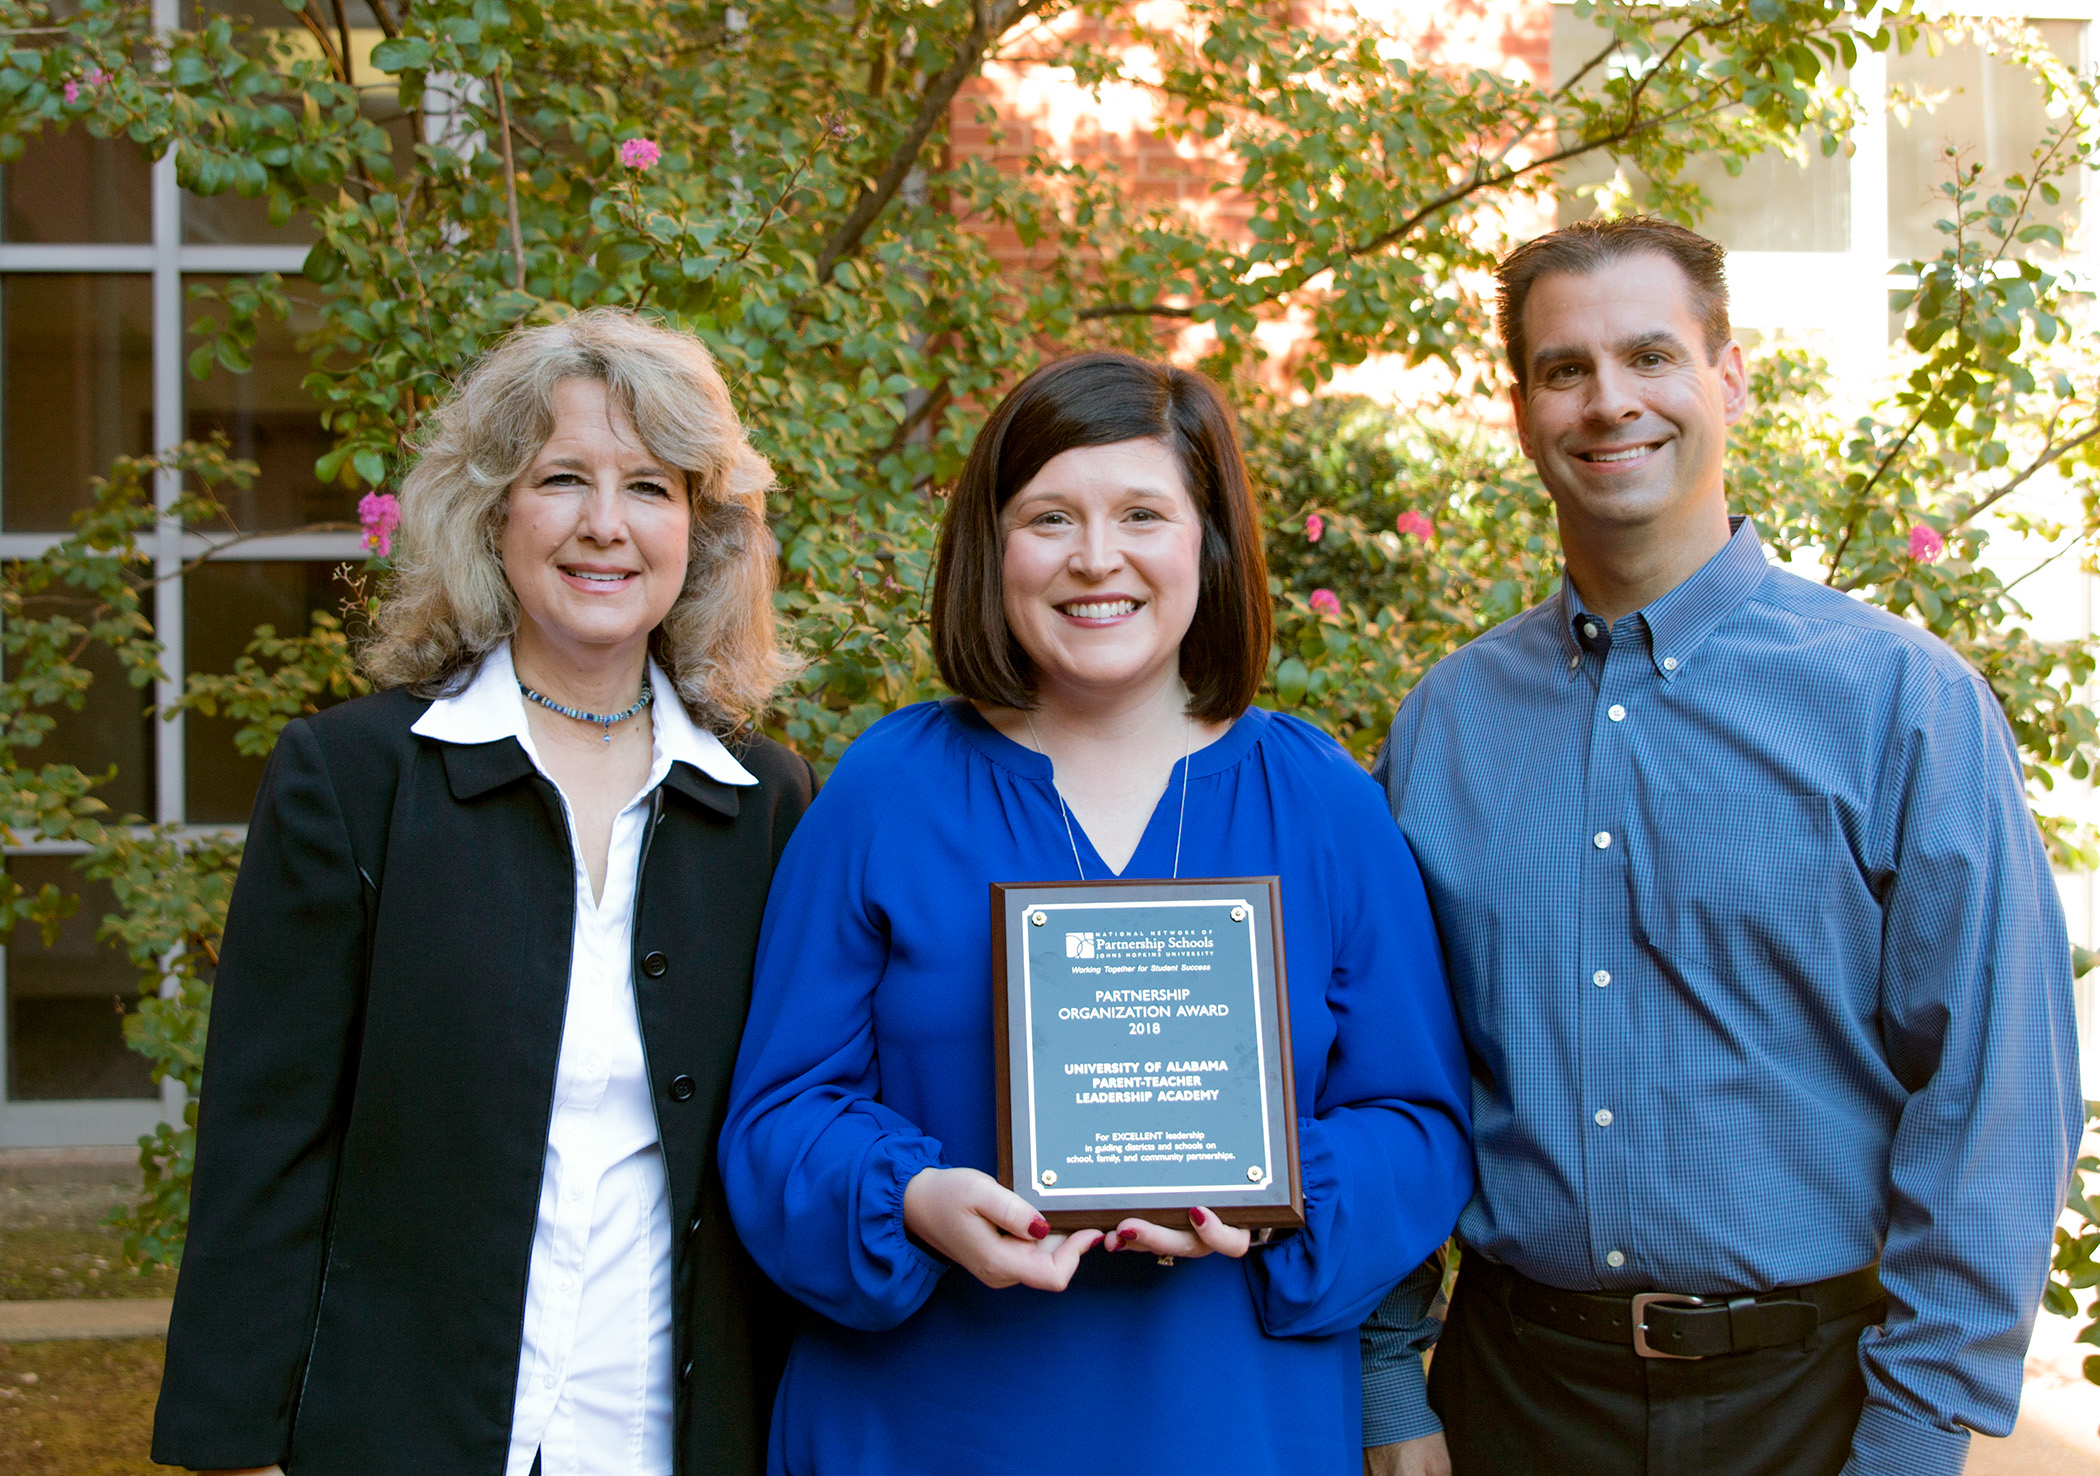 Dr. Elizabeth Wilson, Dr. Blake Berryhill, and Dr. Holly Morgan (center) are shown with the plaque recognizing UA's Parent Teacher Leadership Academy as a recipient of the Partnership Organization Award from the National Network of Partnership Schools at Johns Hopkins University. Morgan is PTLA director and Wilson and Berryhill are faculty partners representing the Colleges of Education and Human Environmental Sciences.